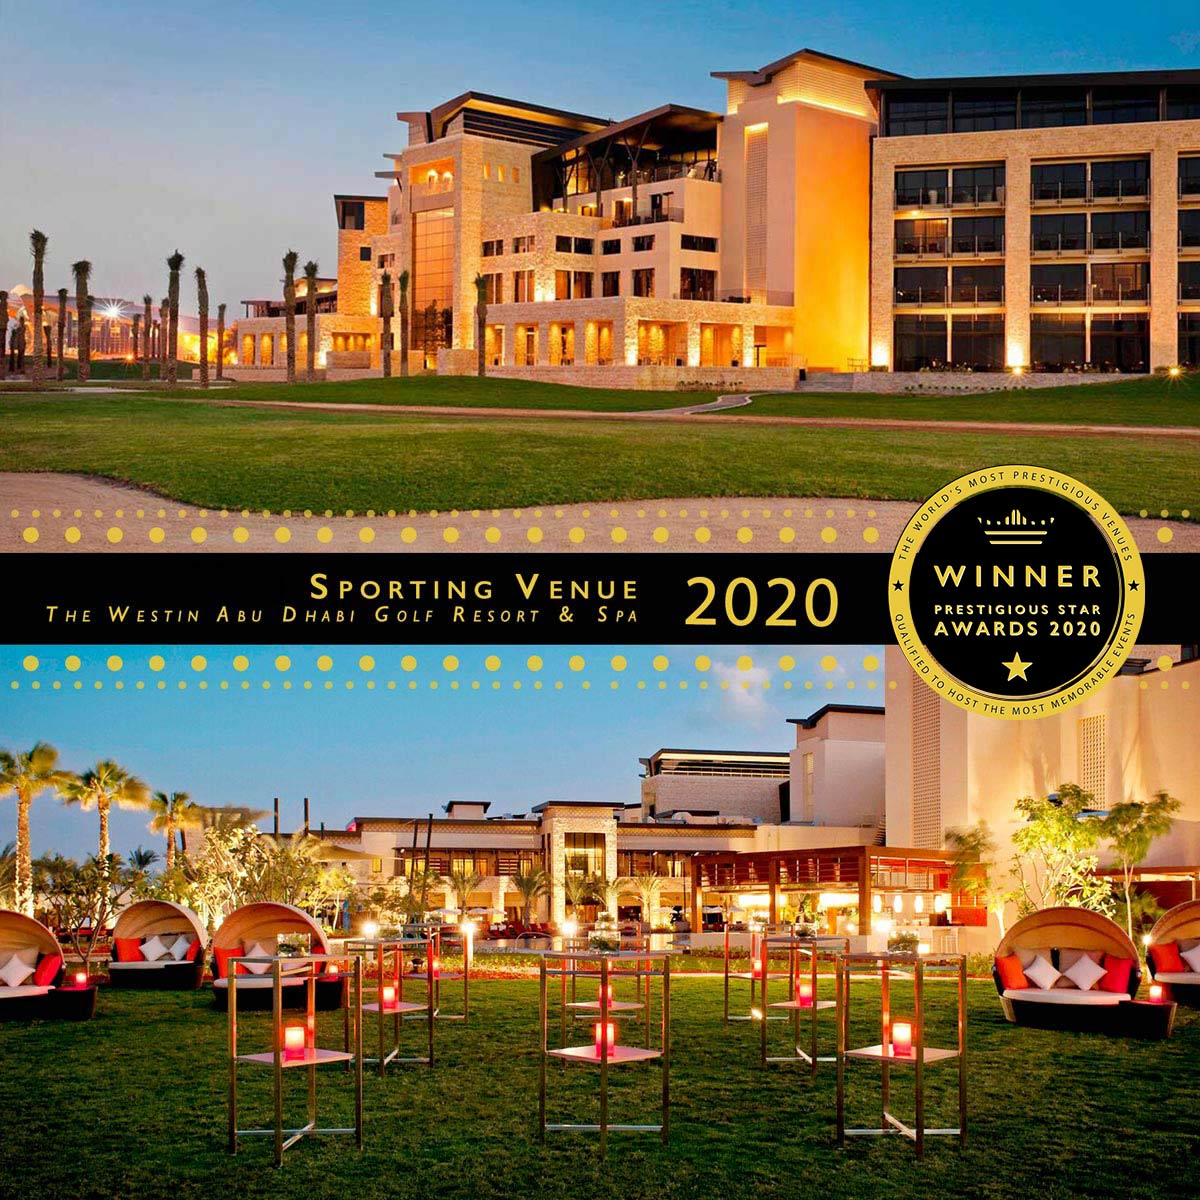 Event Lawn at The Westin Abu Dhabi Golf Resort & Spa